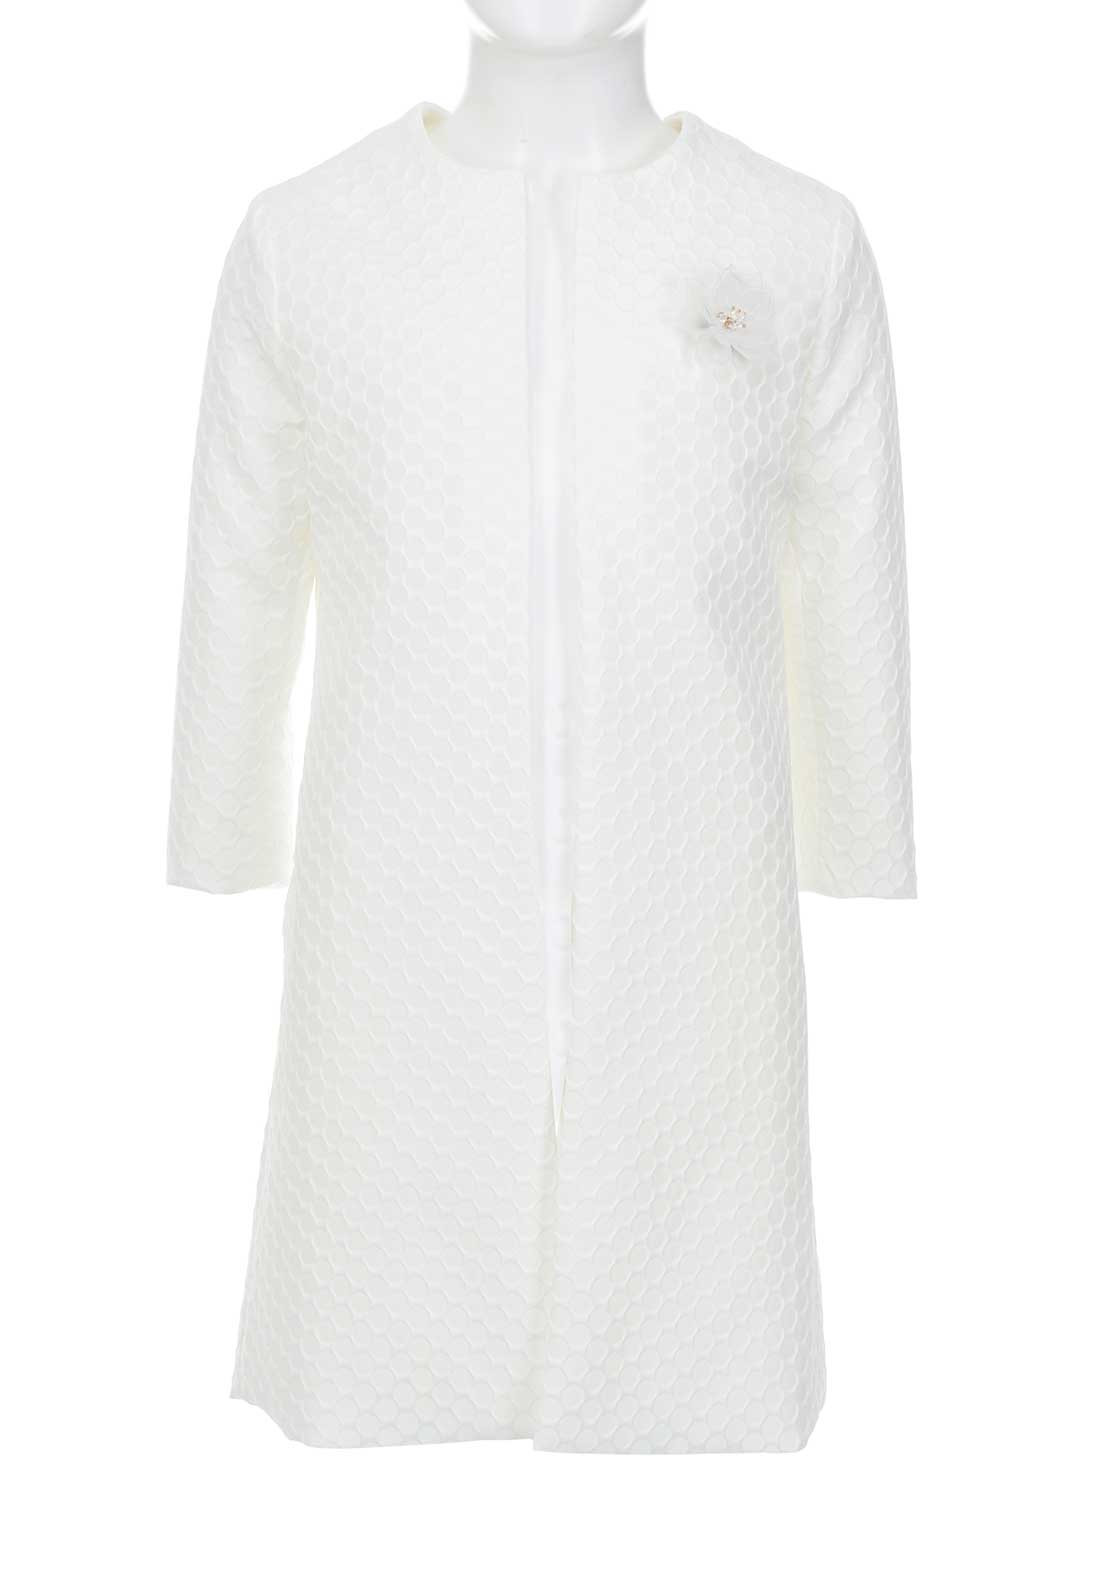 GYMP Girls Embossed Jacket with Brooch, Ivory